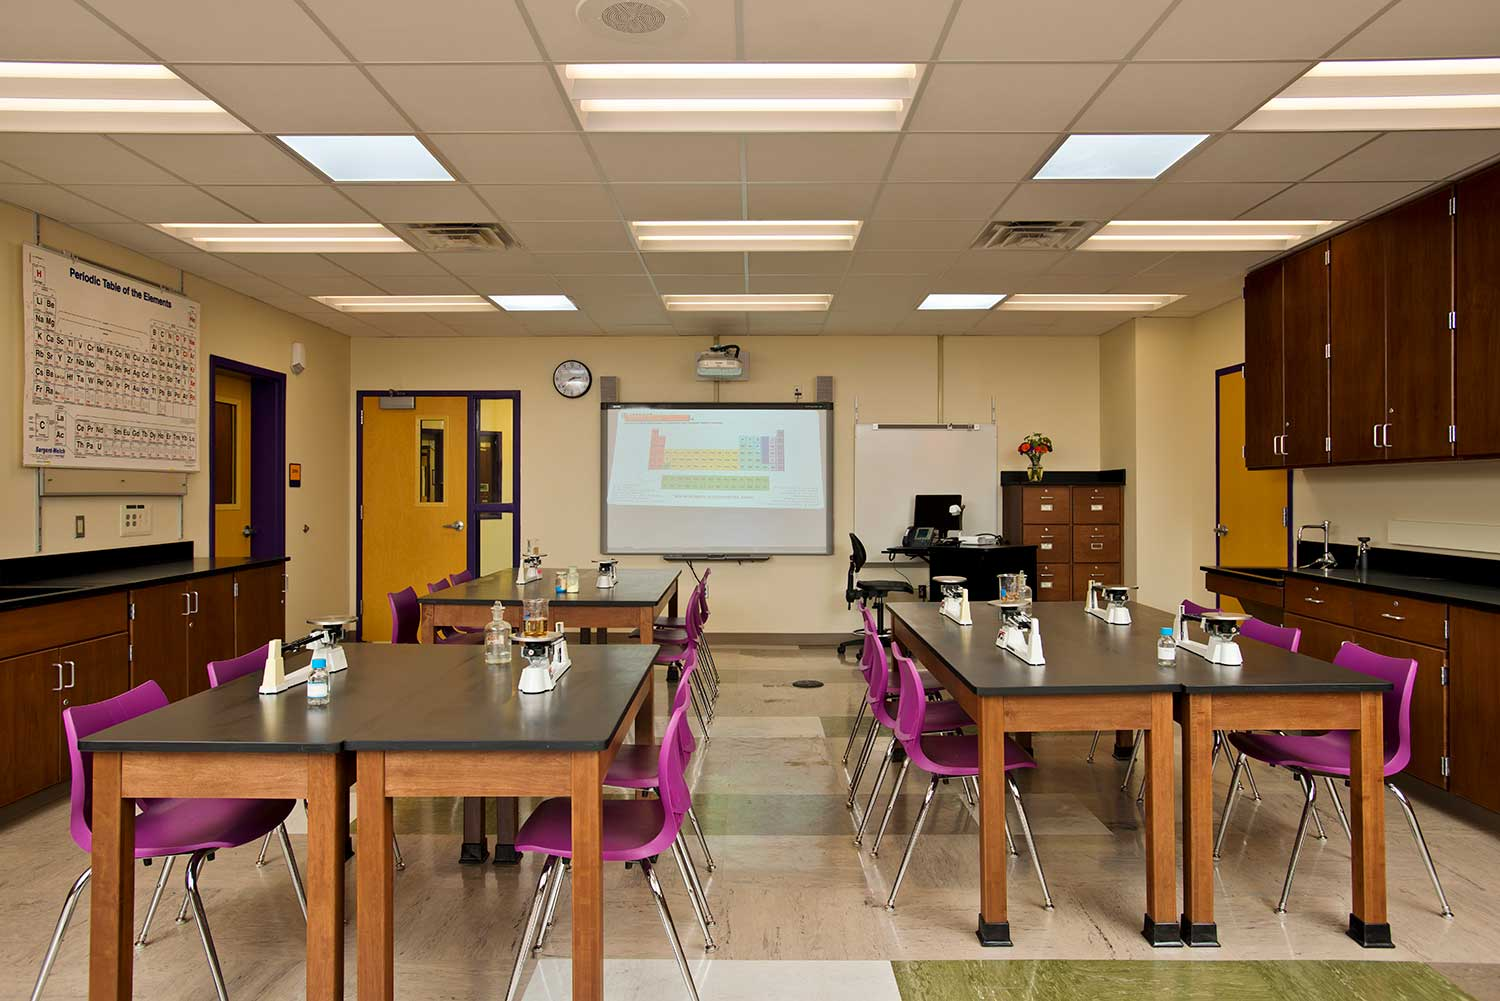 Science labs at the Troy Middle School include the latest technology and flexible design for teaching and experimentation.